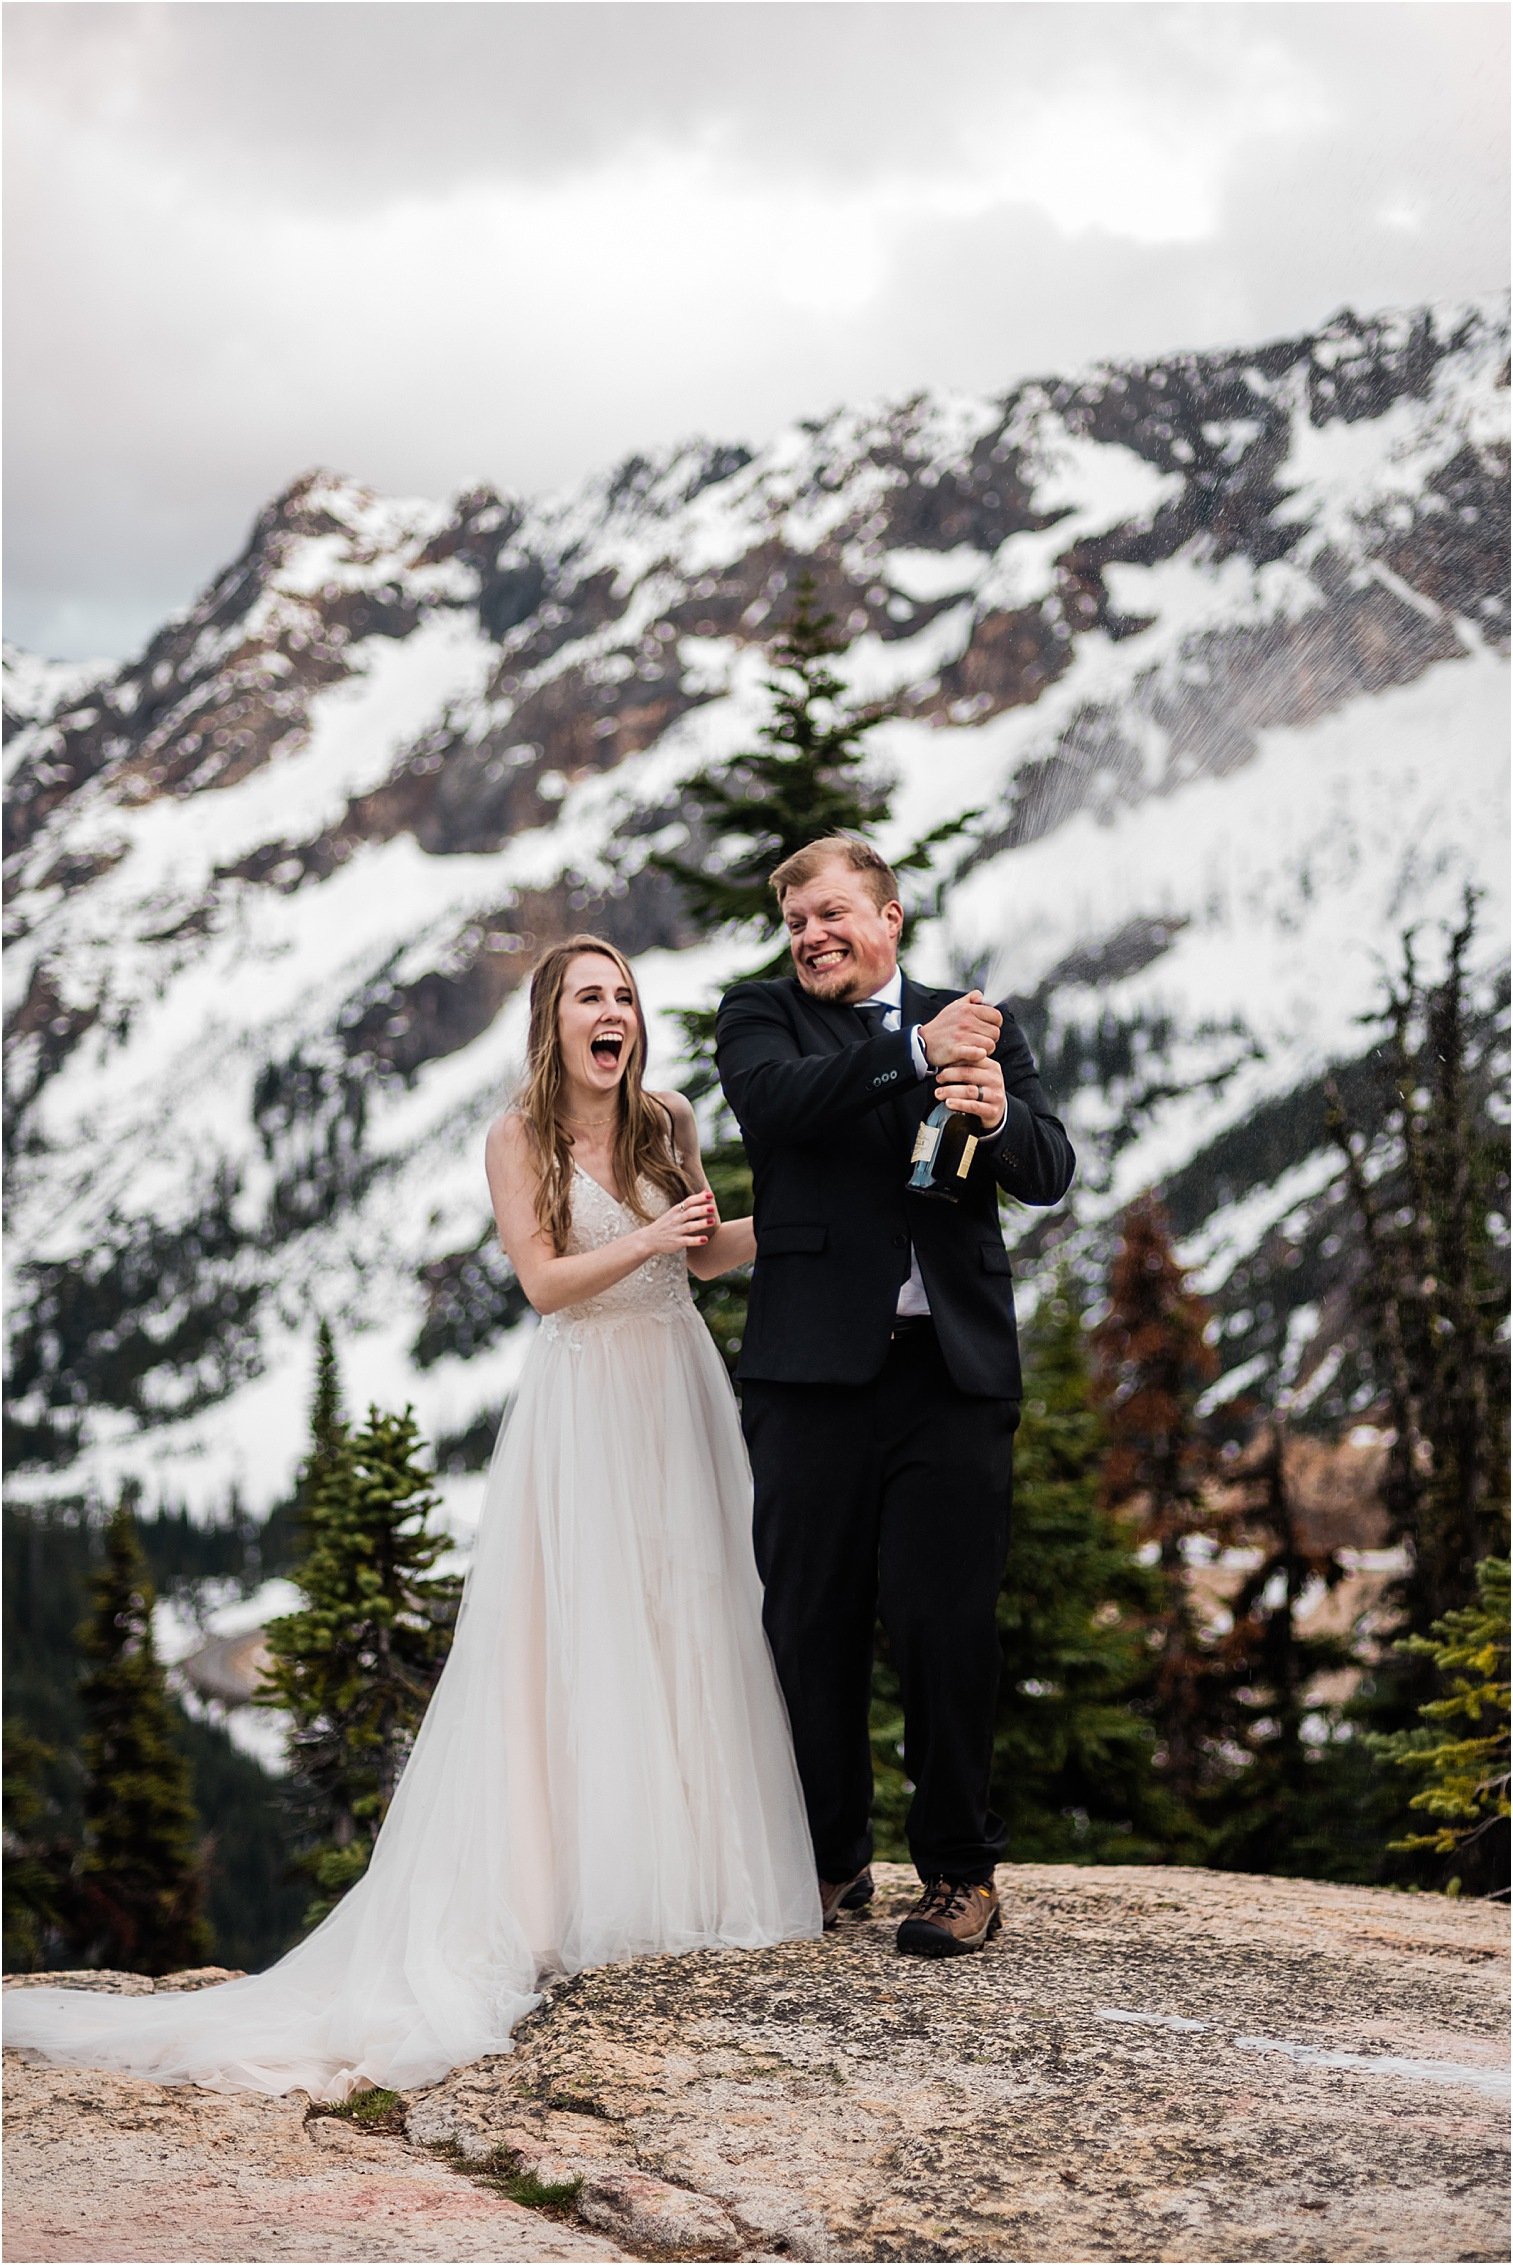 Hope & Steven celebrating their new marriage with champagne at sunset in North Cascades. Image by Forthright Photo, Seattle Wedding & Elopement Photographers